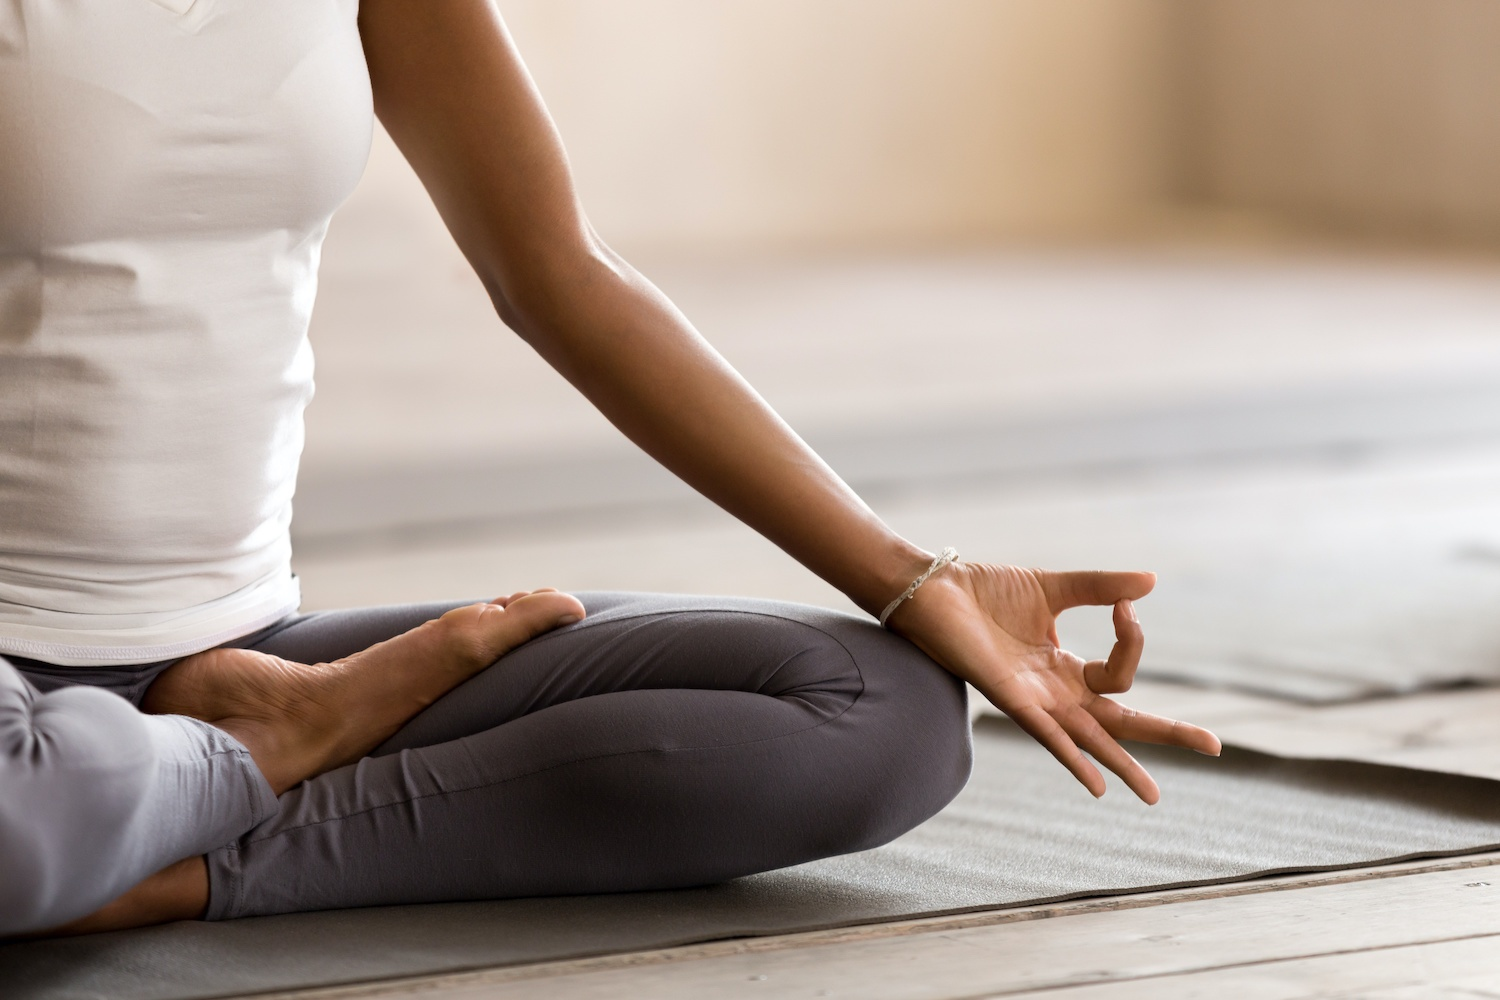 Begin a meditation practice.   8 easy new year's resolutions to commit to in 2021